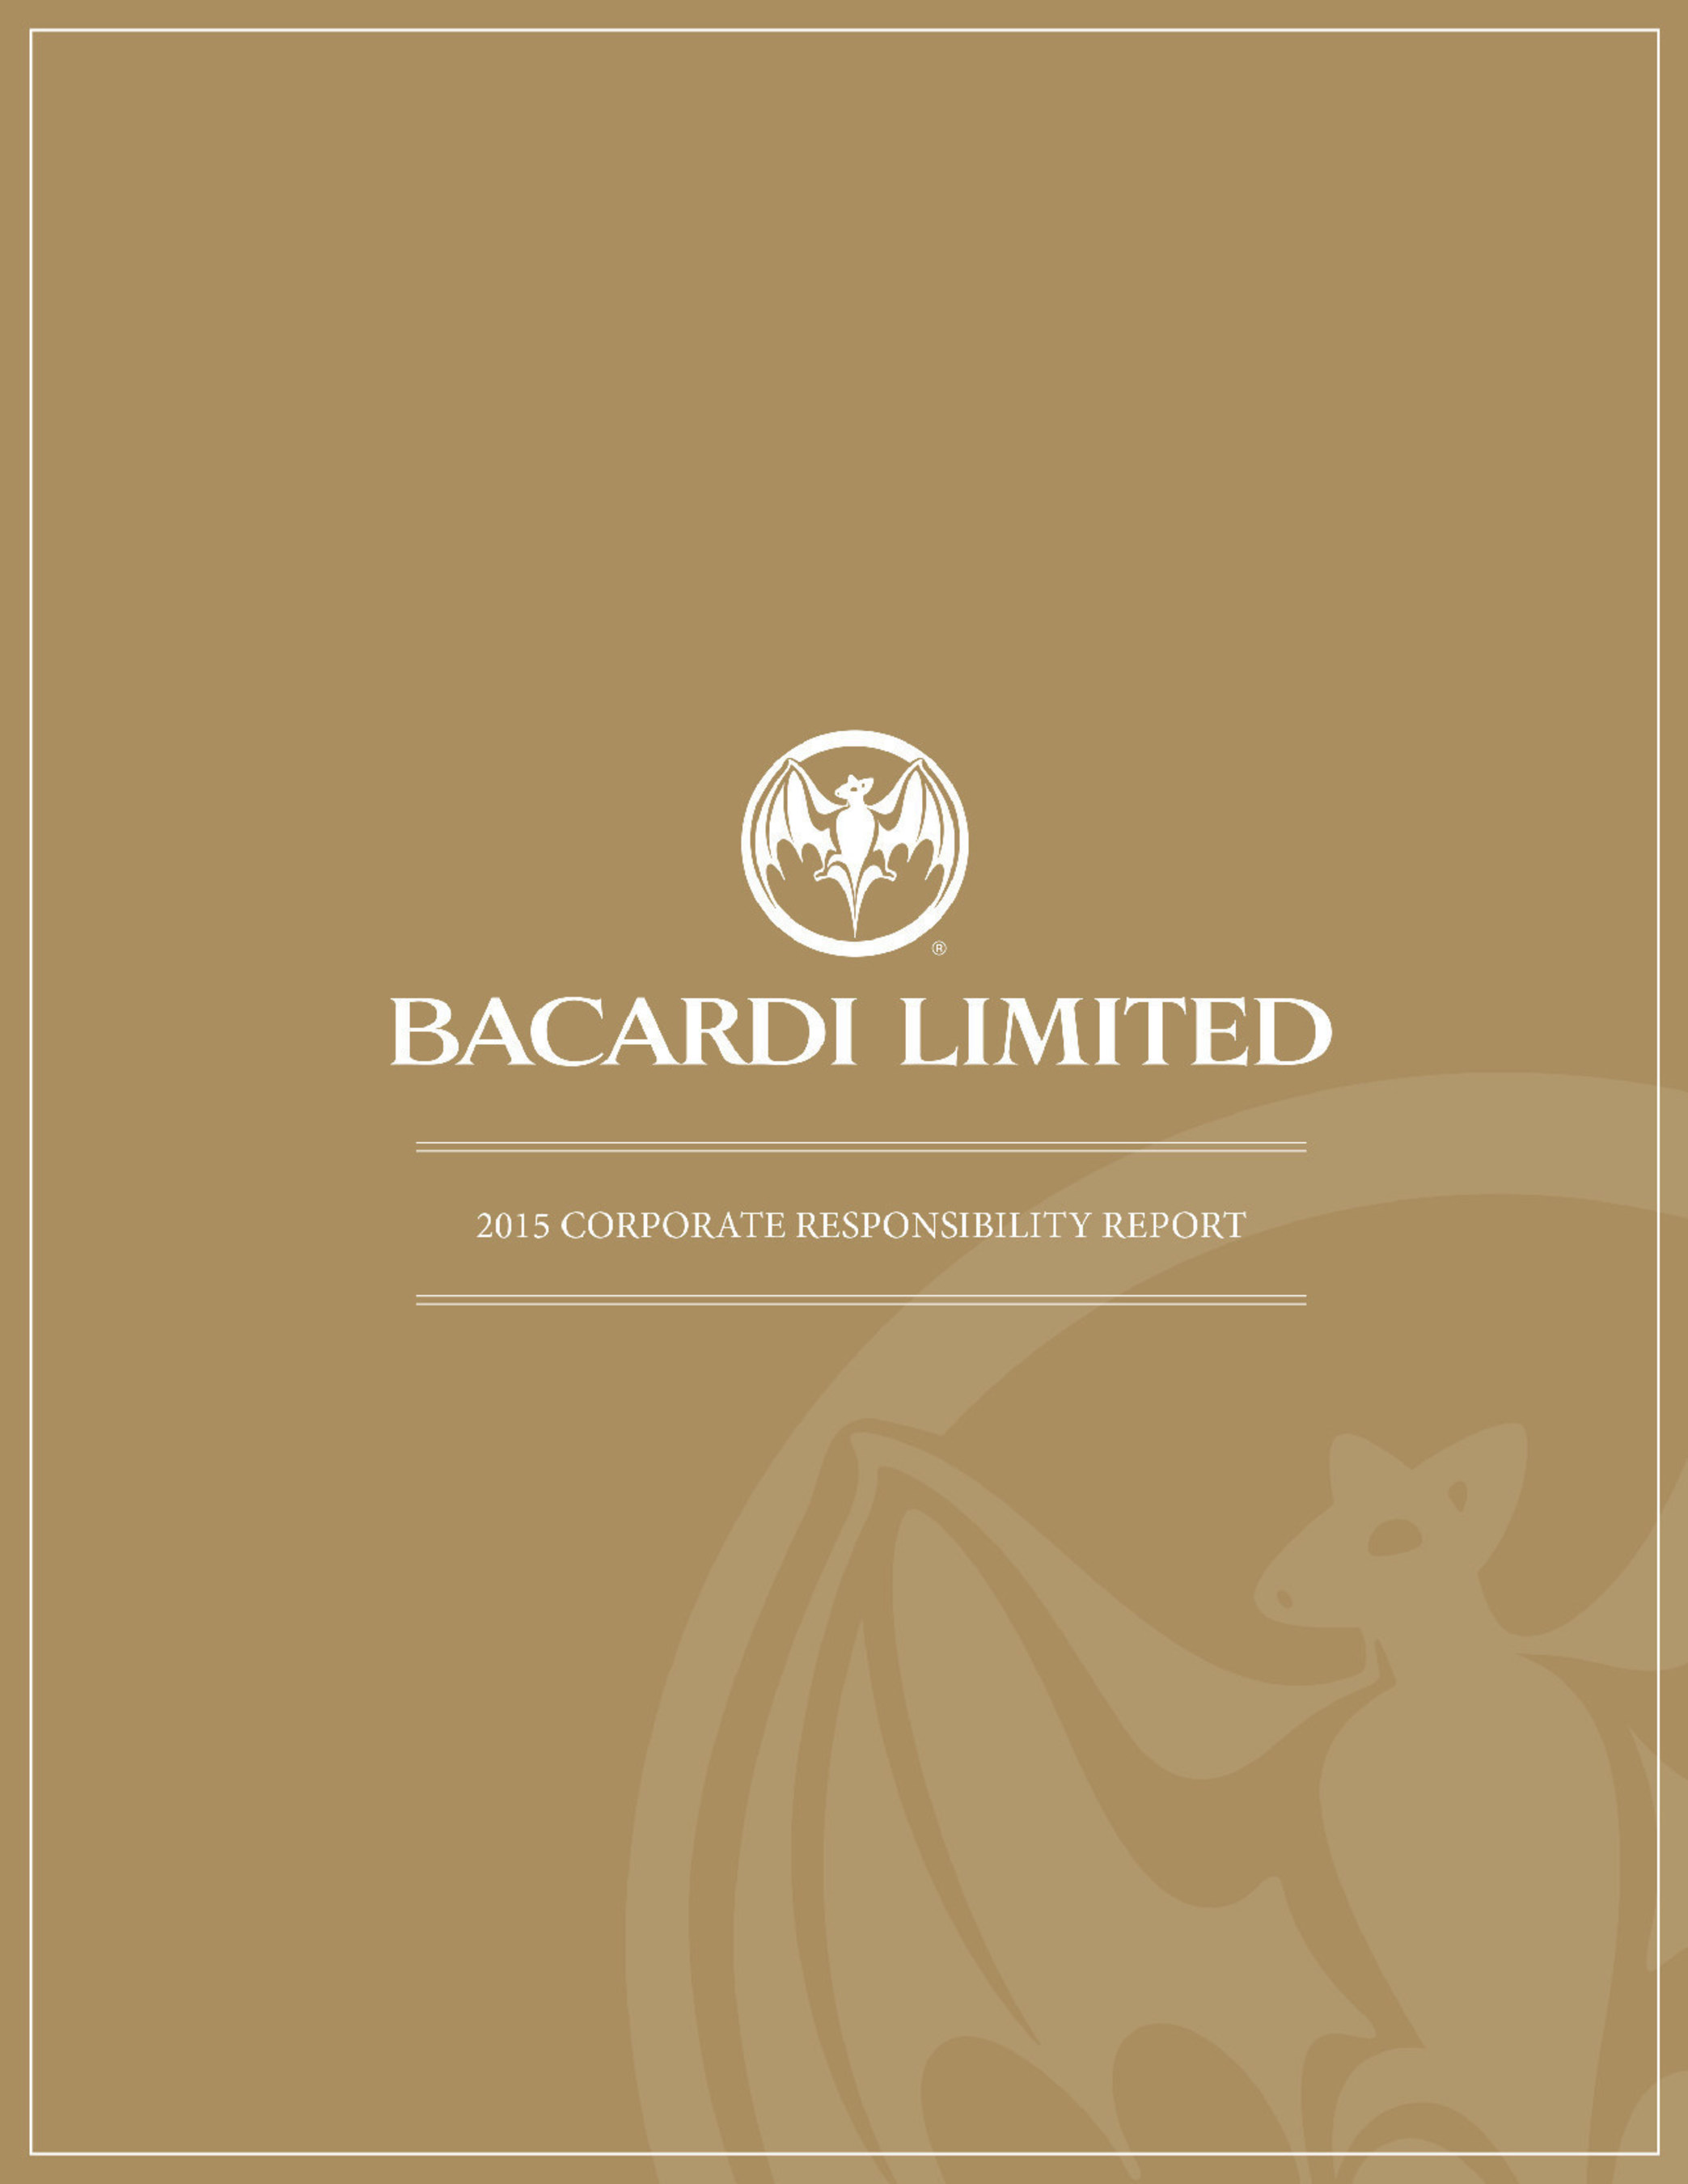 """Family-owned Bacardi Limited, the world's largest privately held spirits company, fully complied with its voluntary marketing codes, improved upon its environmental and operational efficiencies, continued to invest in its global """"Good Spirited"""" sustainability initiative, increased engagement with responsible suppliers, and progressed with responsible marketing programs. These accomplishments highlighted in its eighth Corporate Responsibility (CR) Report reinforce the Company's commitment to its stakeholders."""